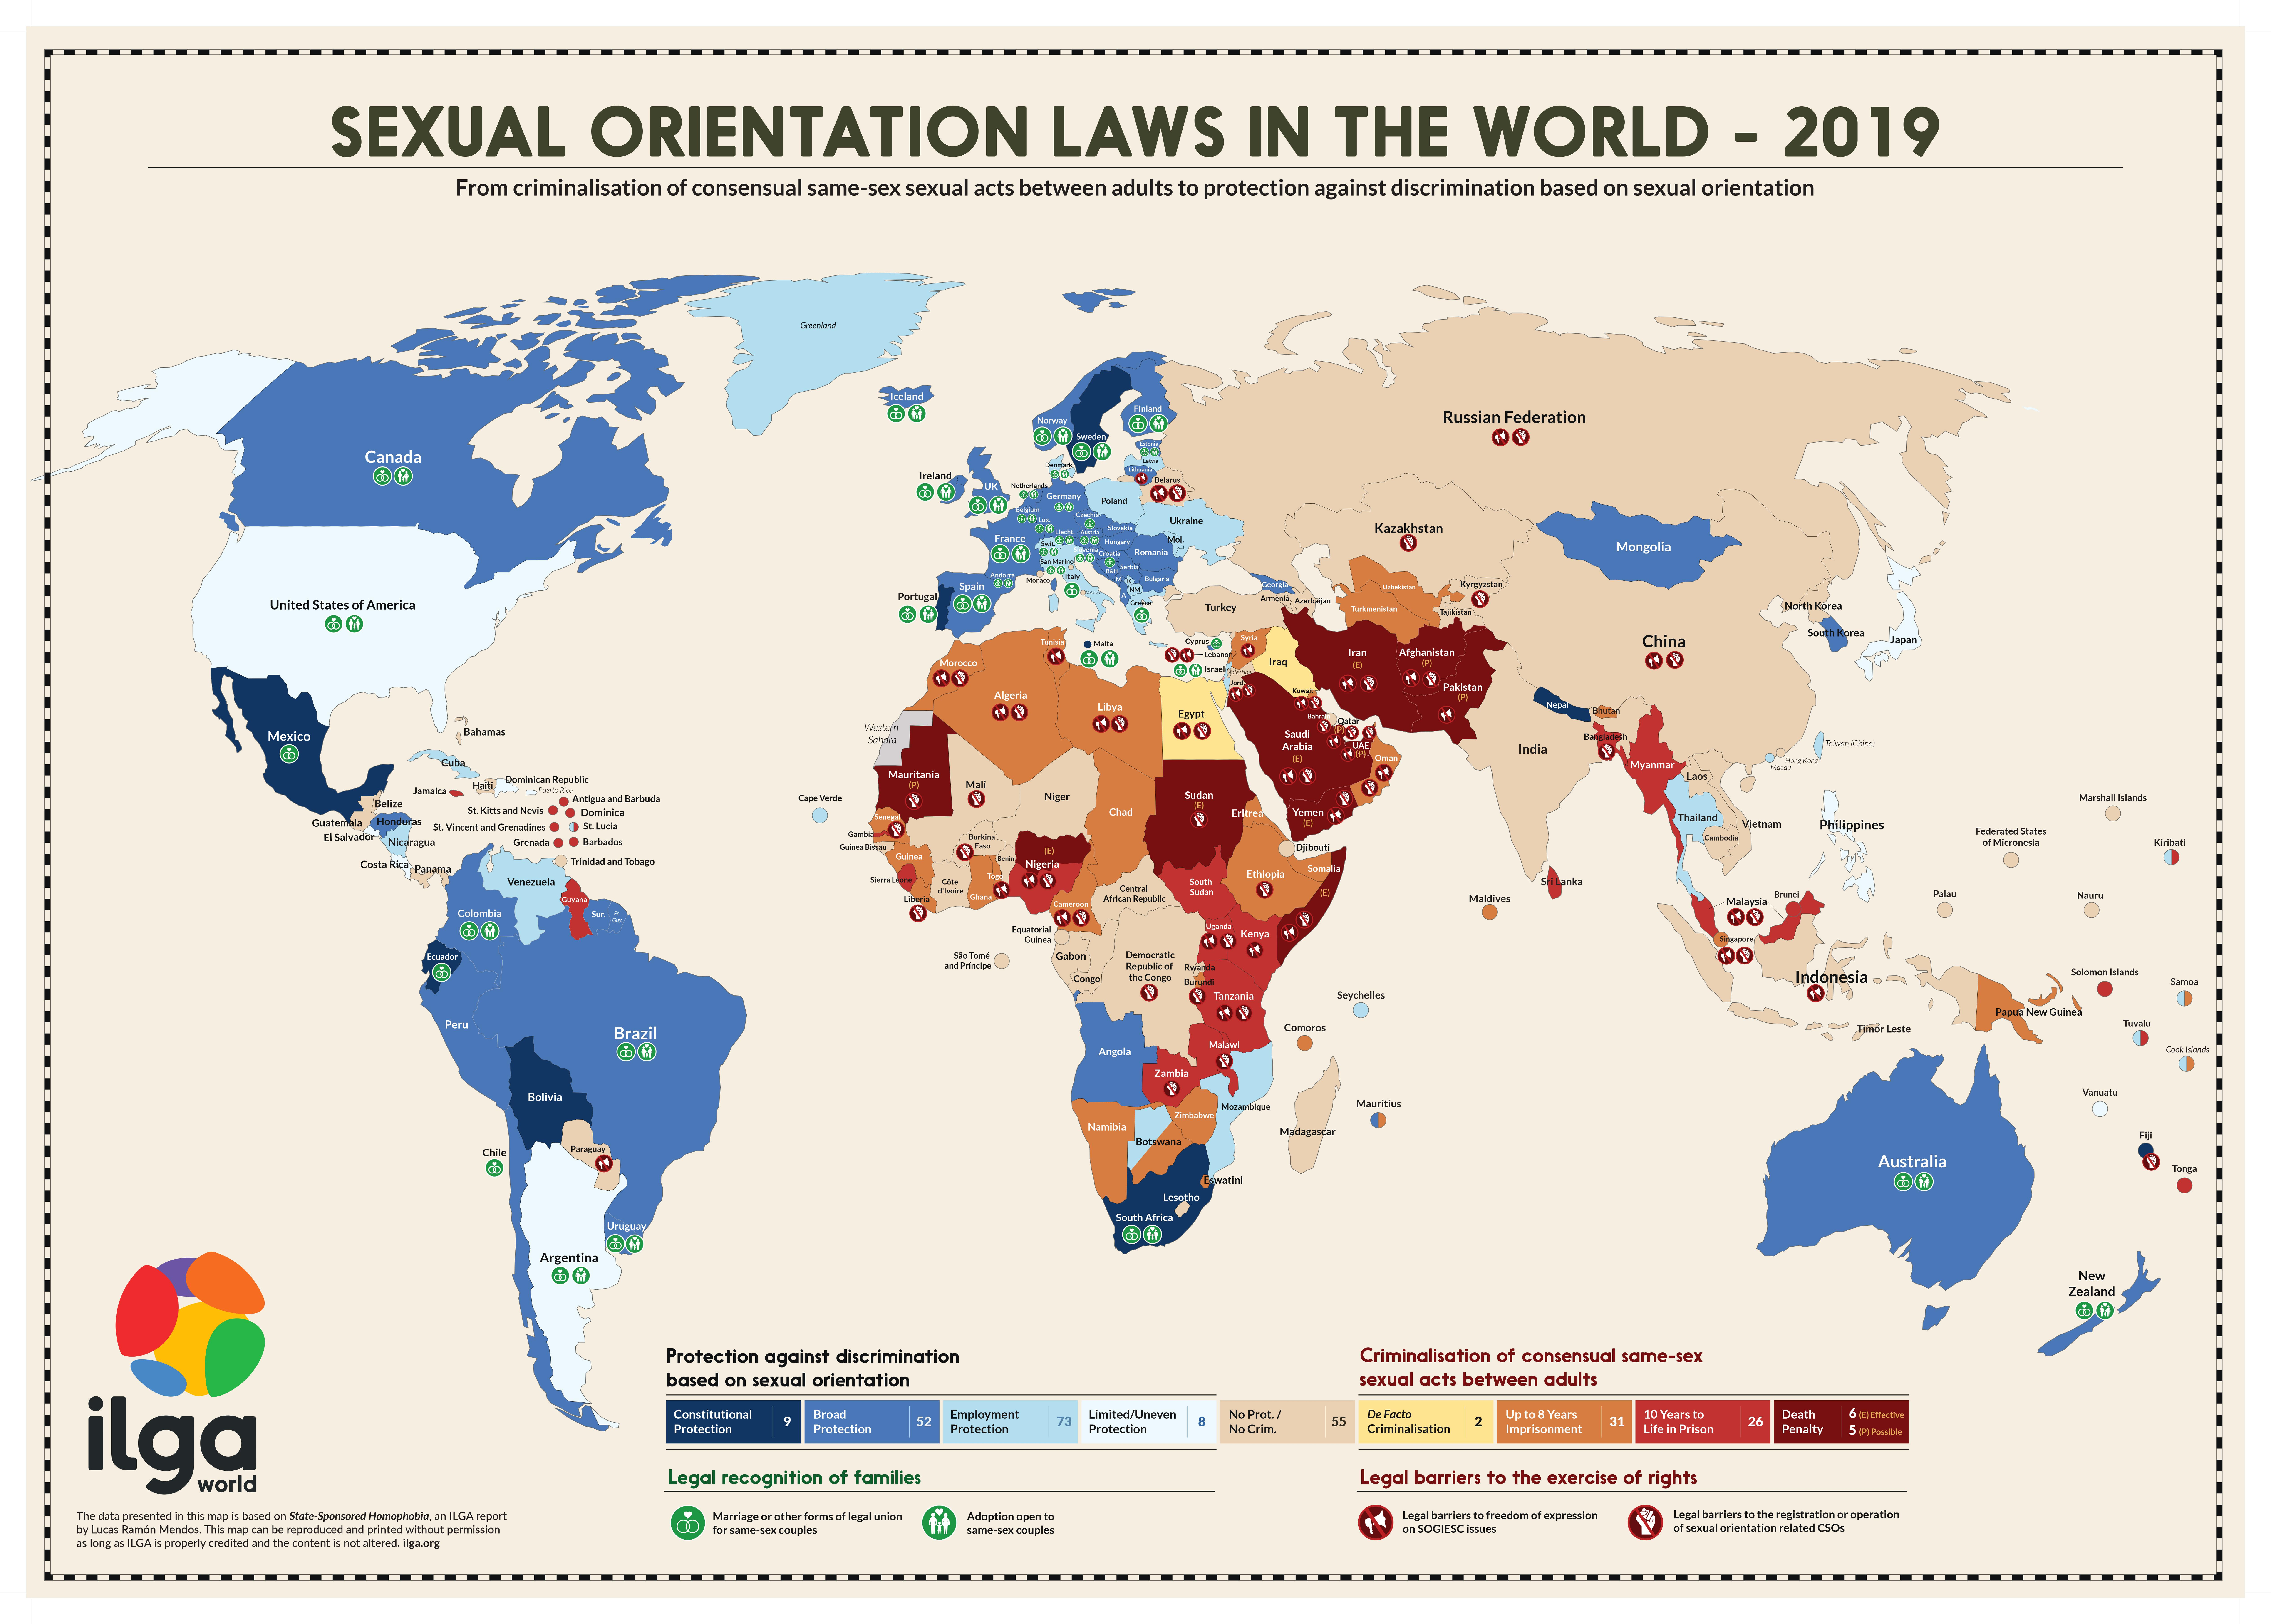 sexual orientation laws globally, map of the different countries where gay and bisexual right s are protected, versus punishable as criminal acts